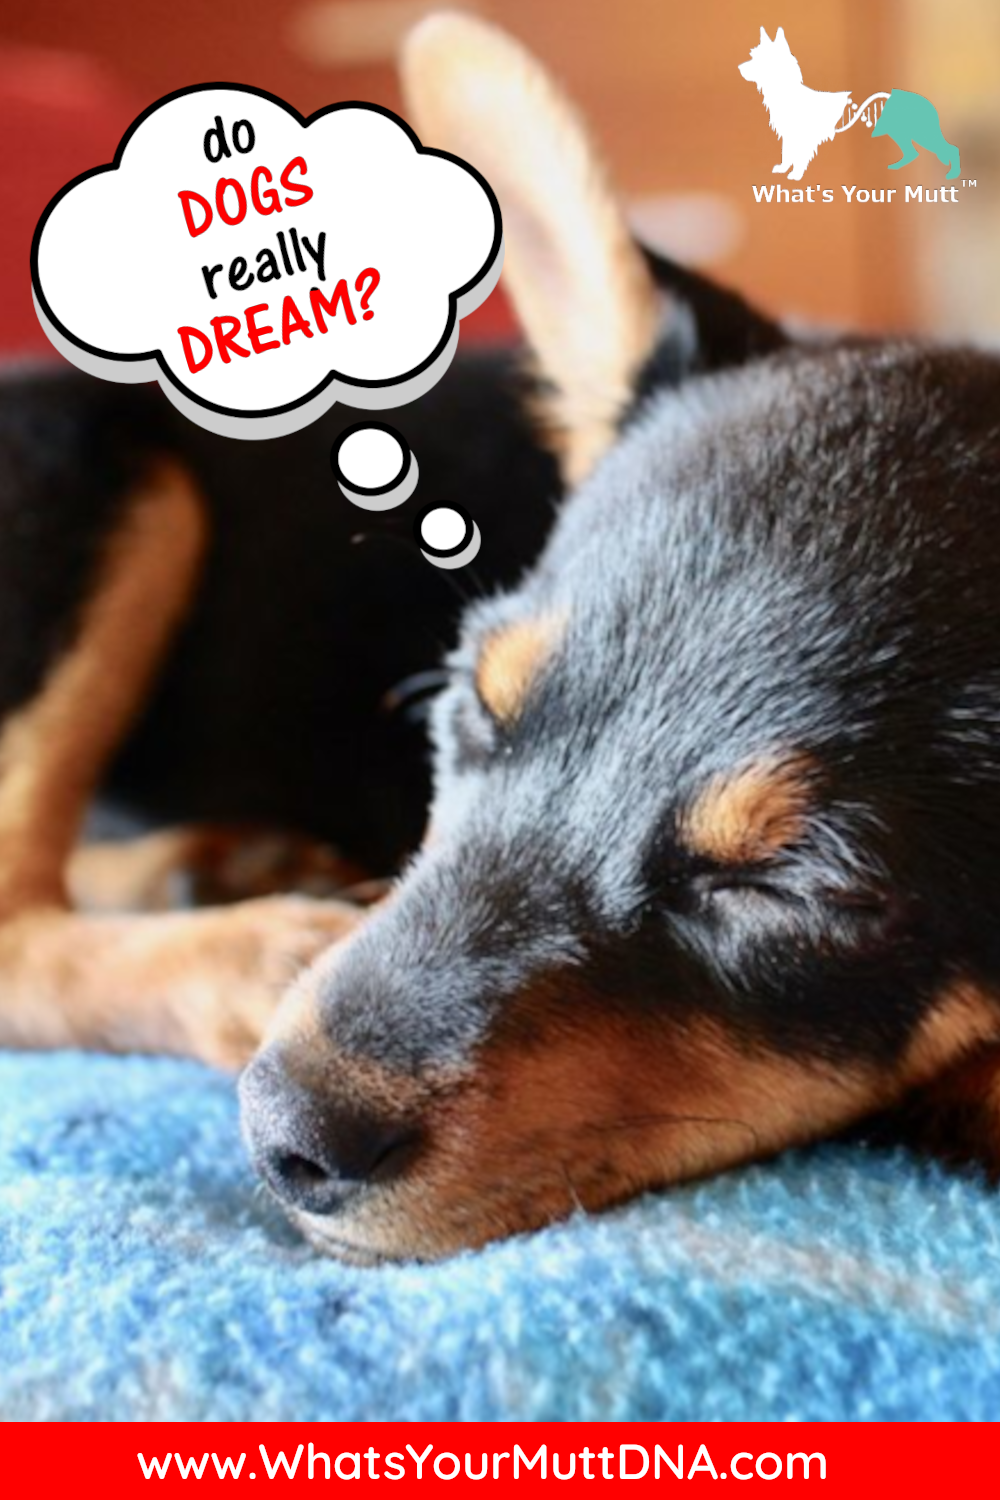 What's Your Mutt DNA do dogs dream